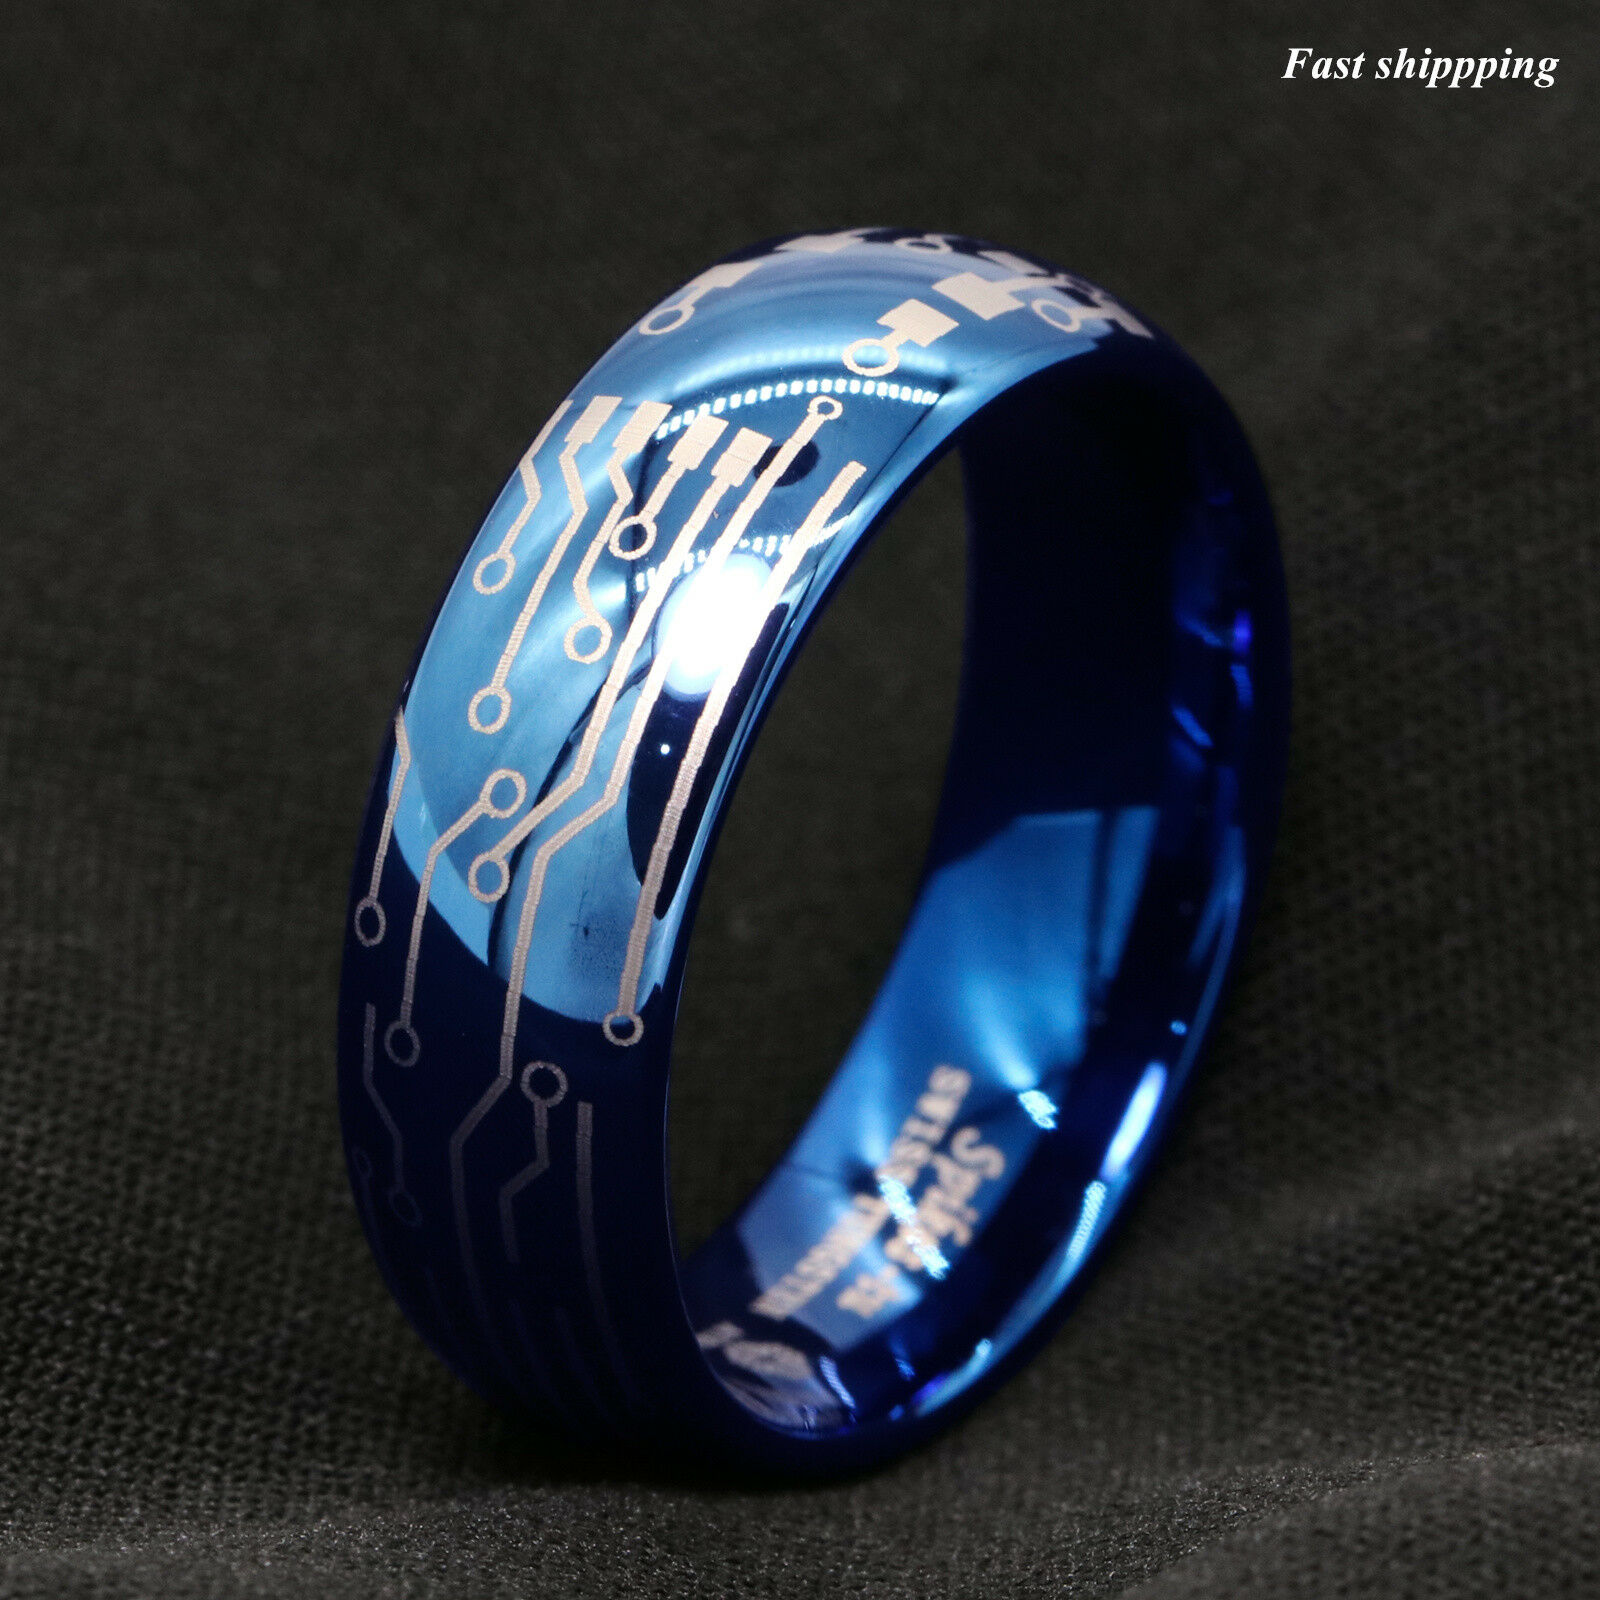 8mm Shiny Blue Dome Tungsten Carbide Ring Laser Circuit Board Atop Jewelry Pls Carefully Choose The Right Size According To Detailed Chart In Description Possibly Avoid Trouble Of Return And Exchange